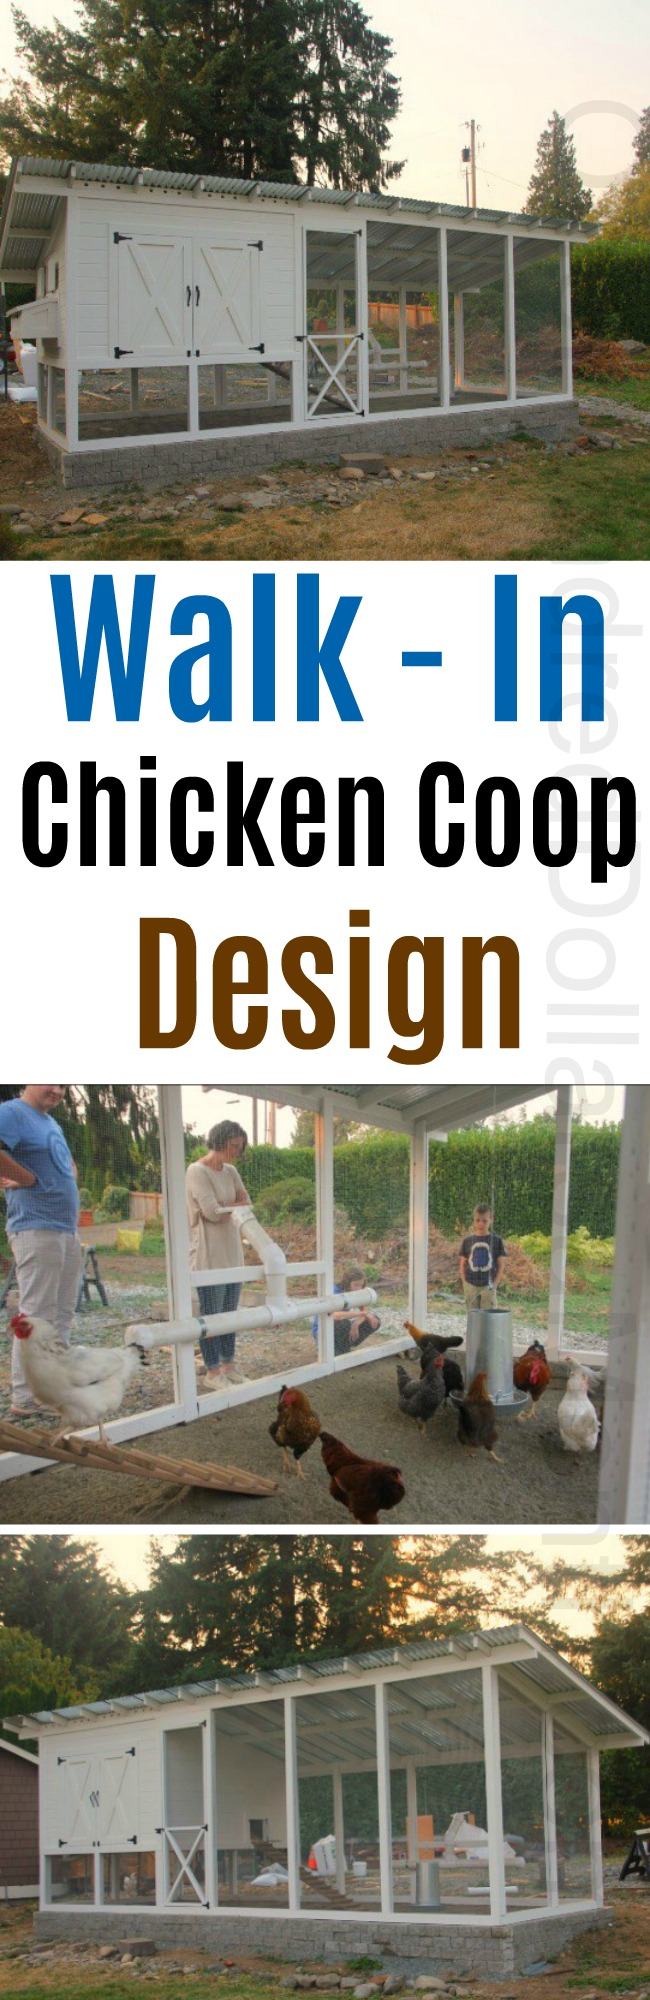 Mavis Mail – Mama Cook From Snohomish Sends in Her Walk in Chicken Coop Photos